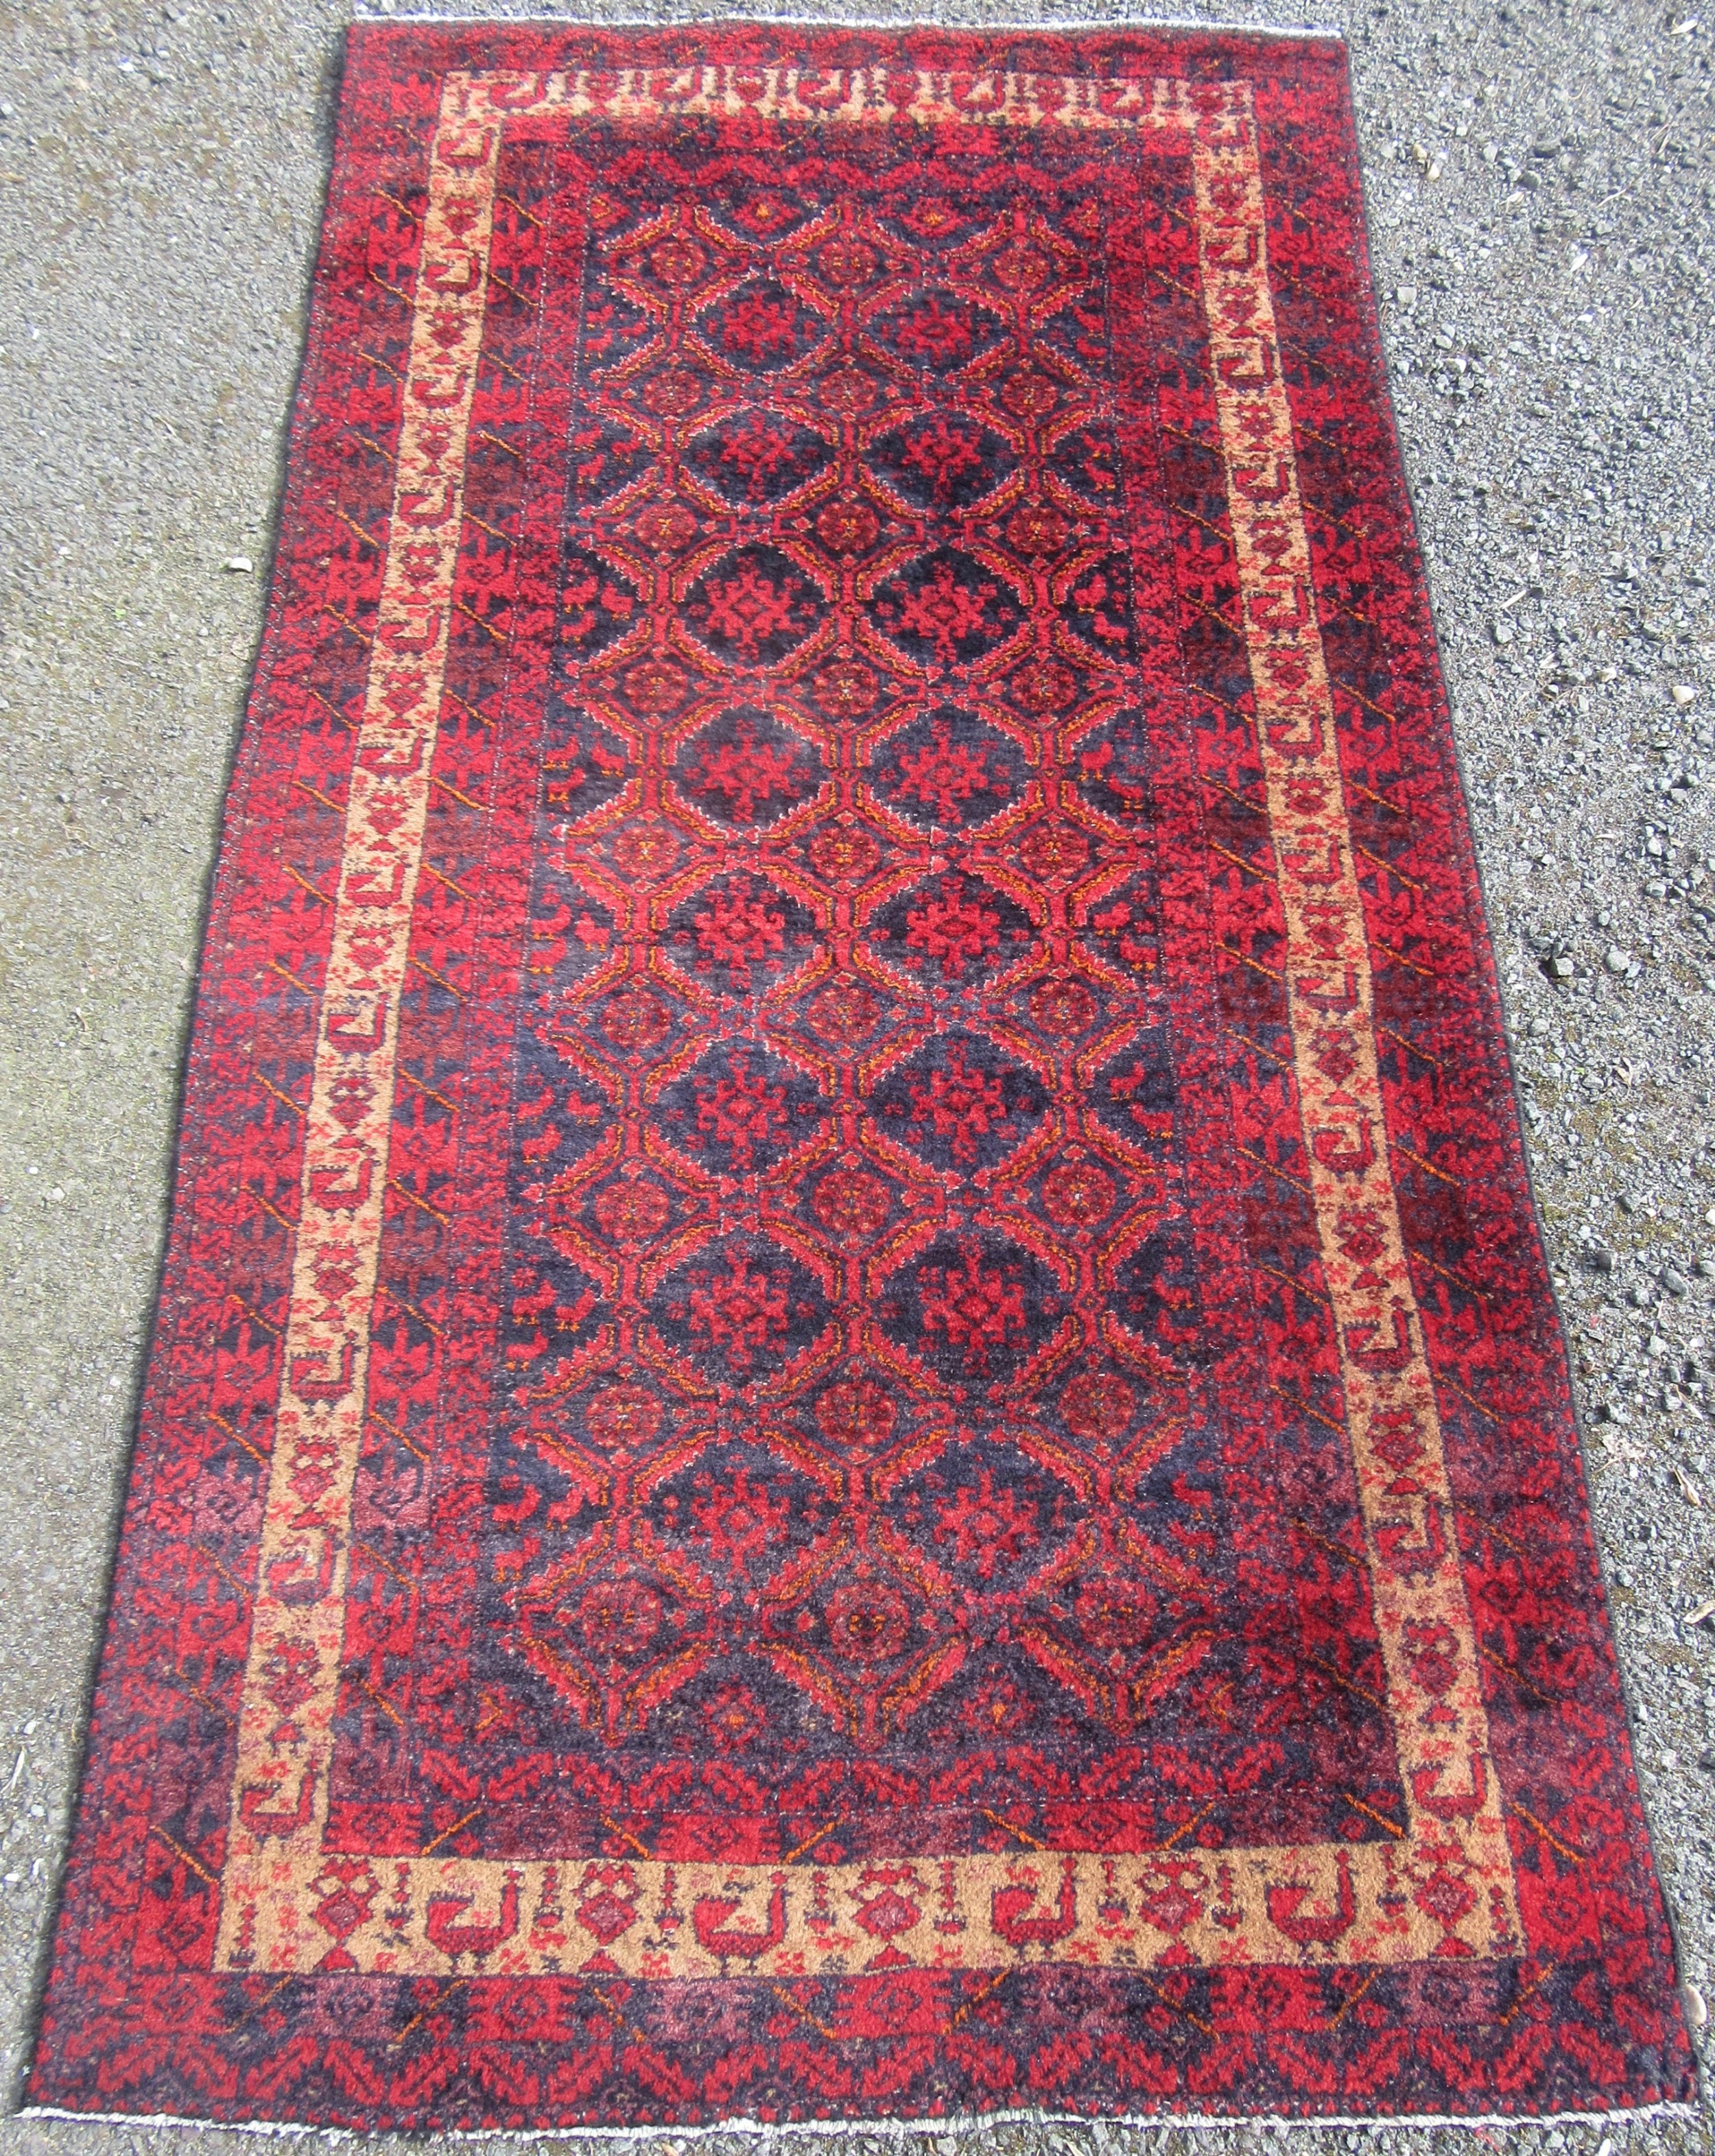 antique persian baluch tribal rug peacock border bird motifs 193cm x 104cm